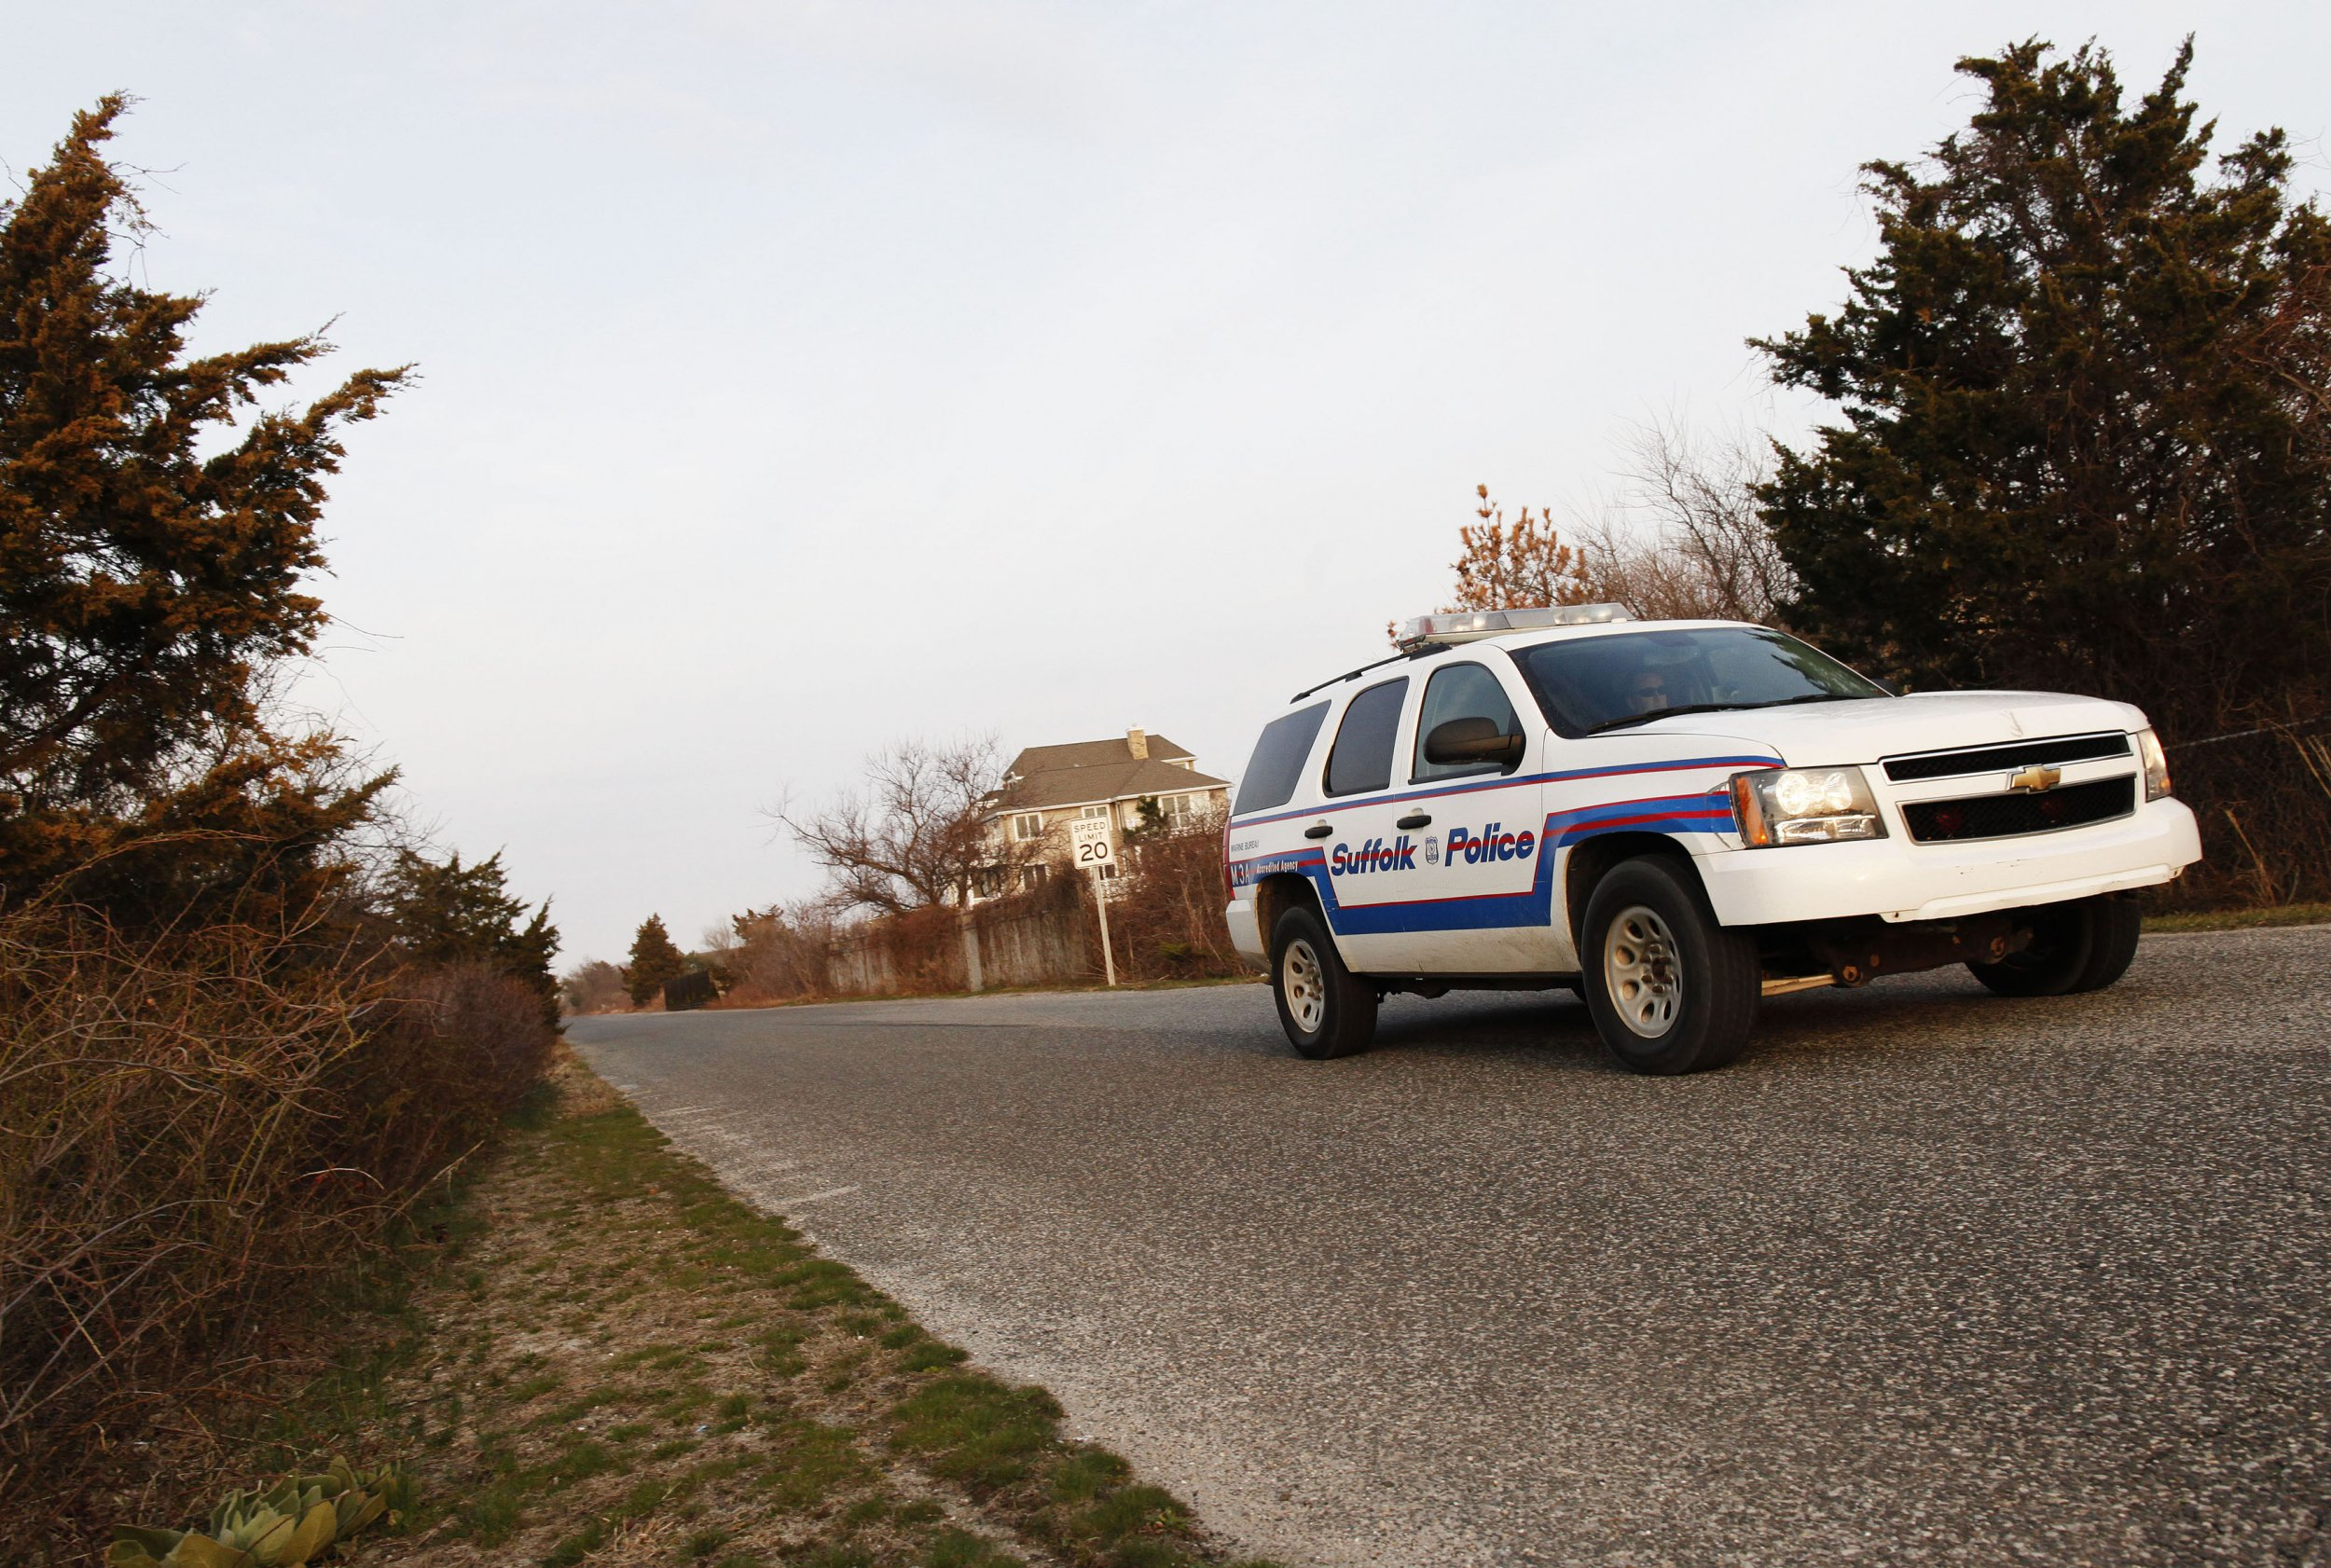 SUFFOLKCONYPD